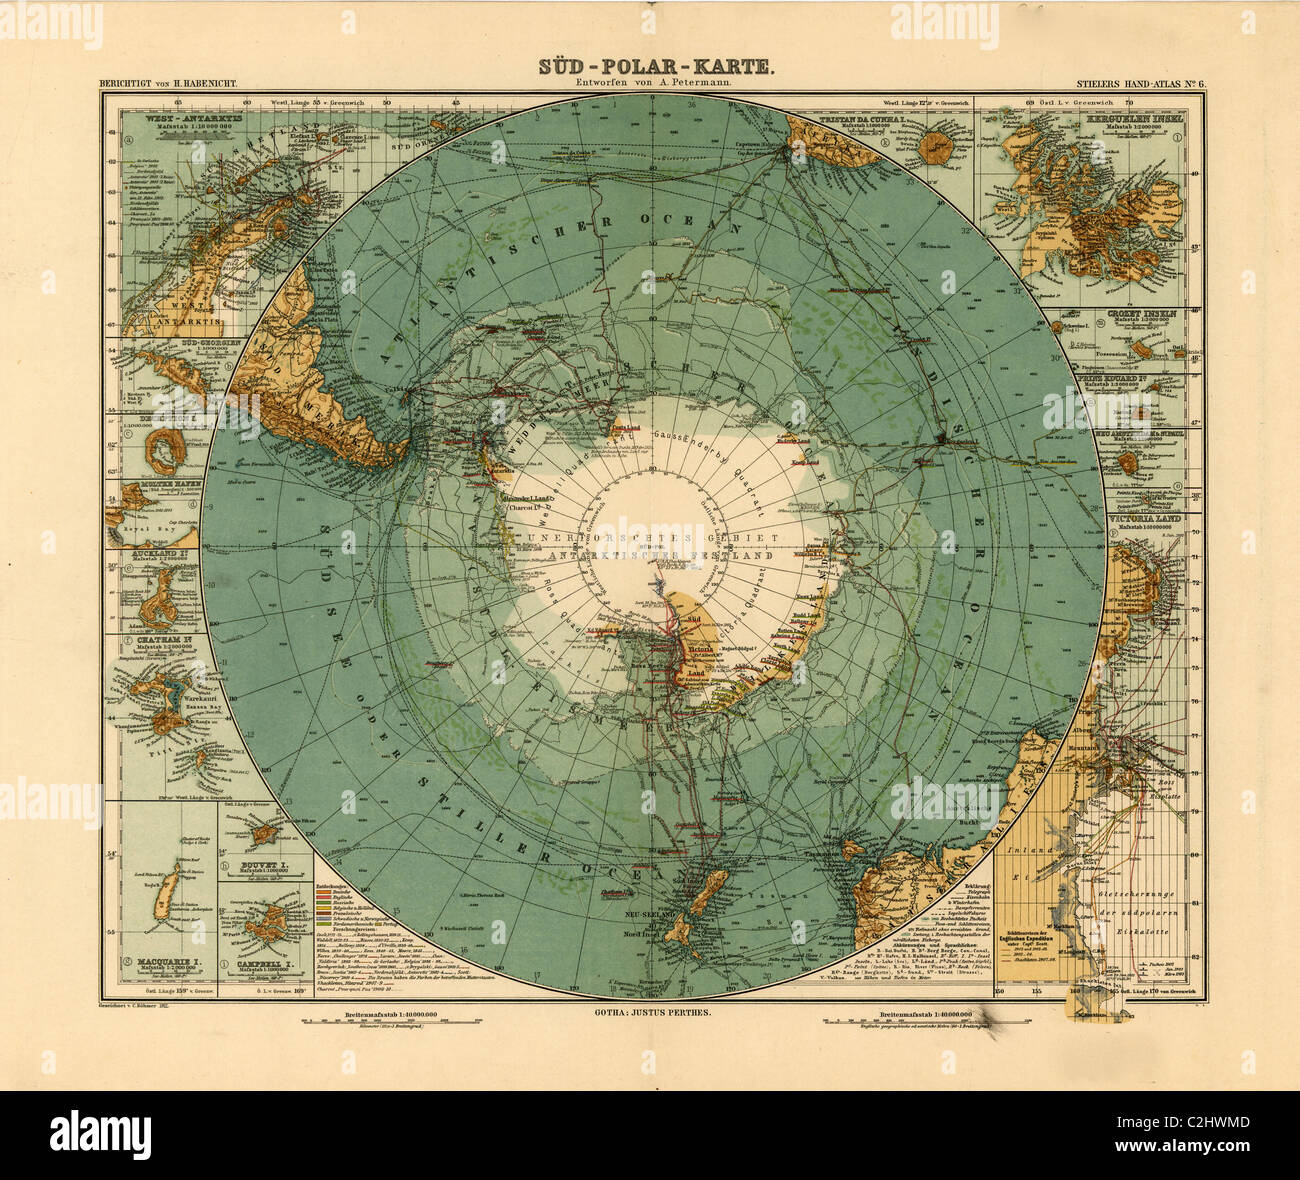 Map of the South Pole- Antarctica - 1912 - Stock Image